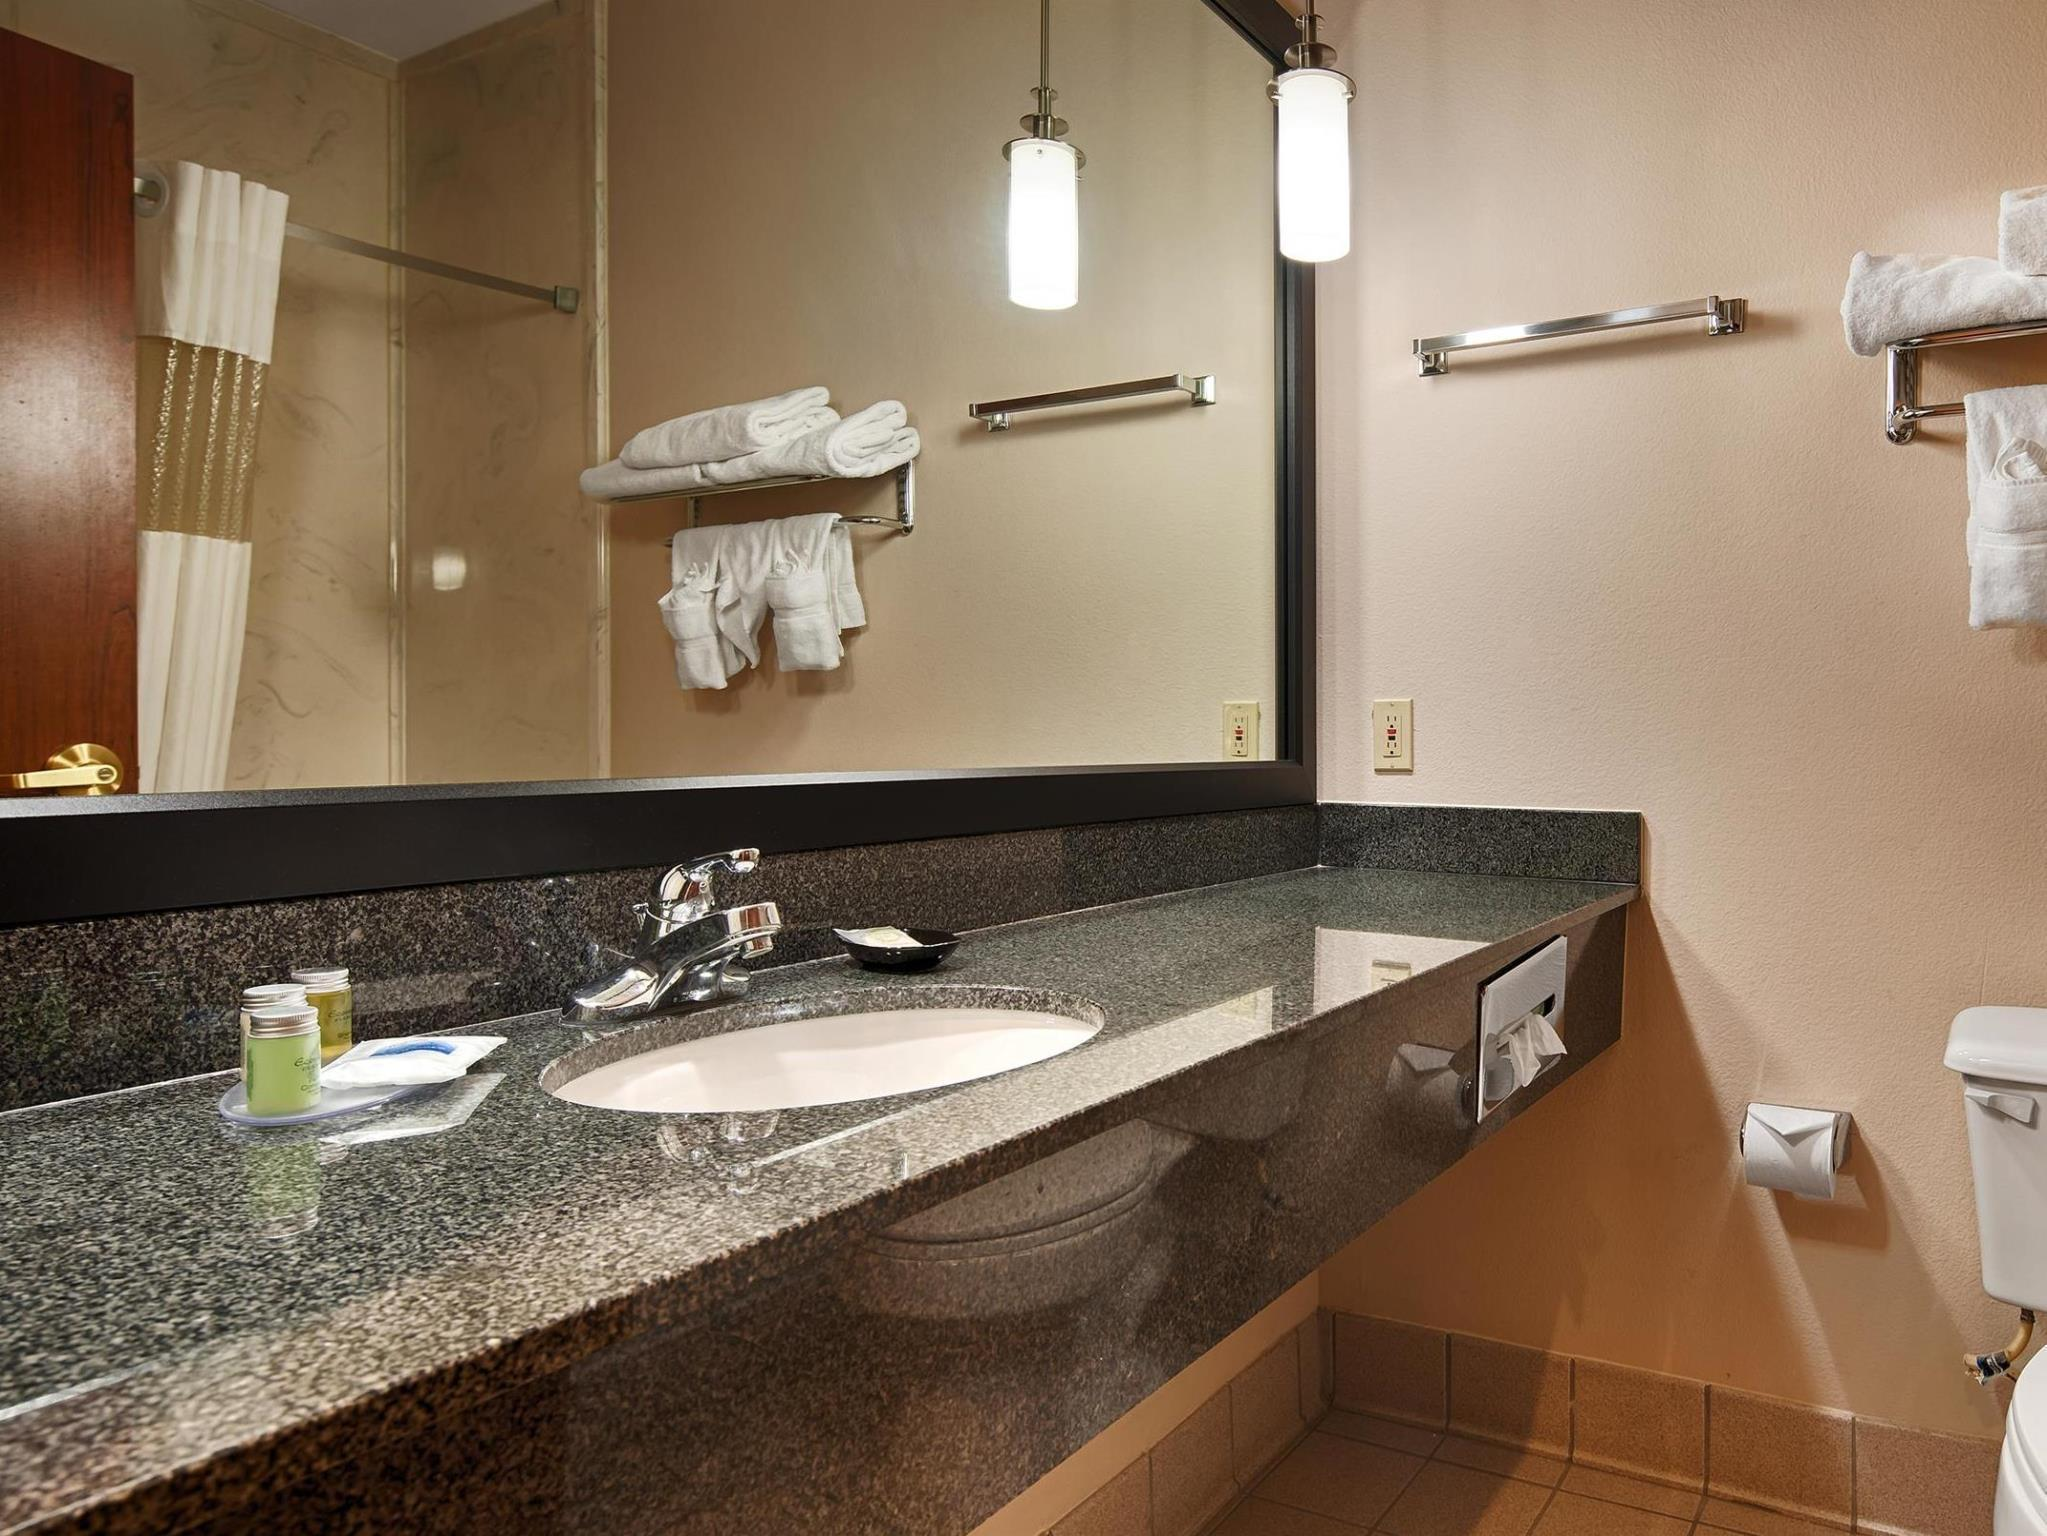 BEST WESTERN PLUS McKinney Inn & Suites, Collin